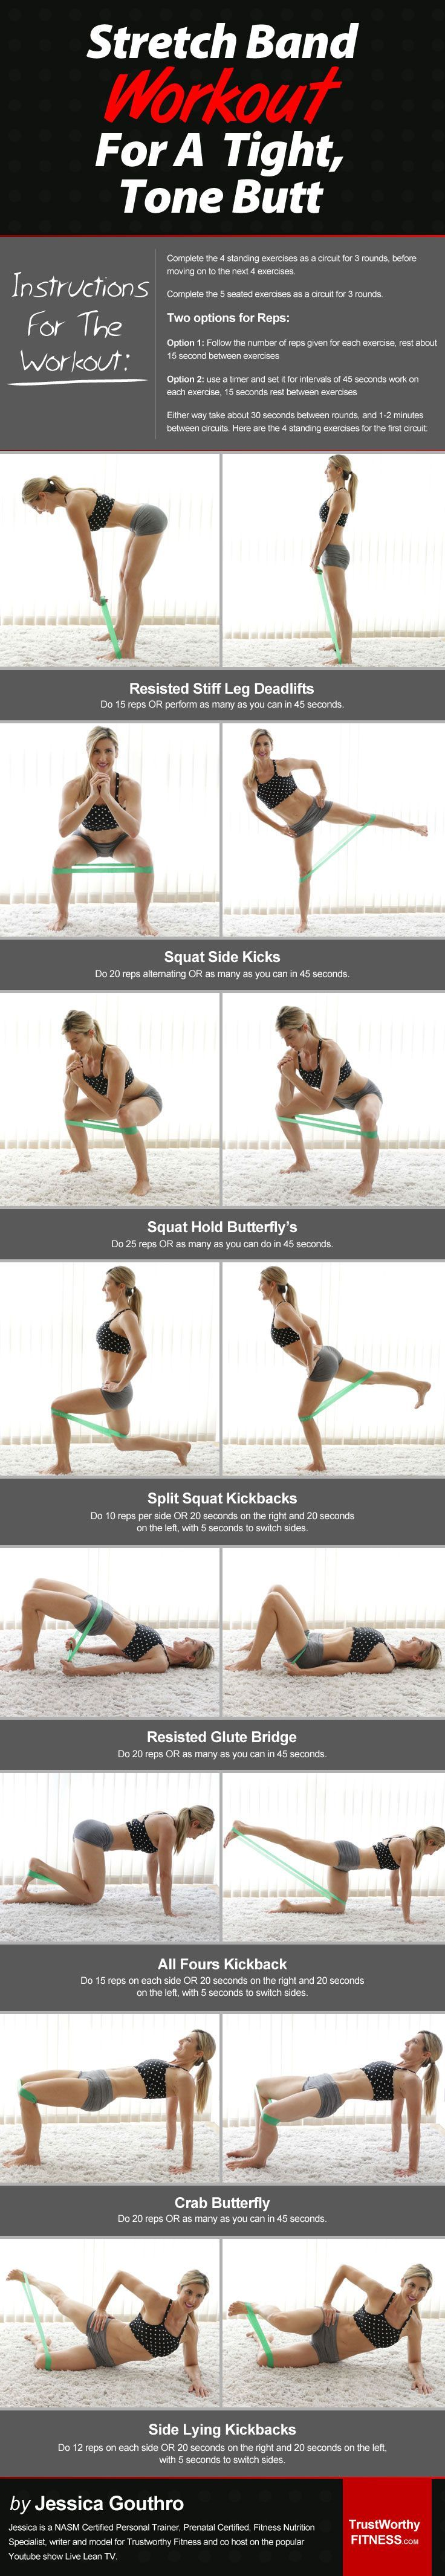 [Workout] How To Use Stretch Bands To Tone The Butt